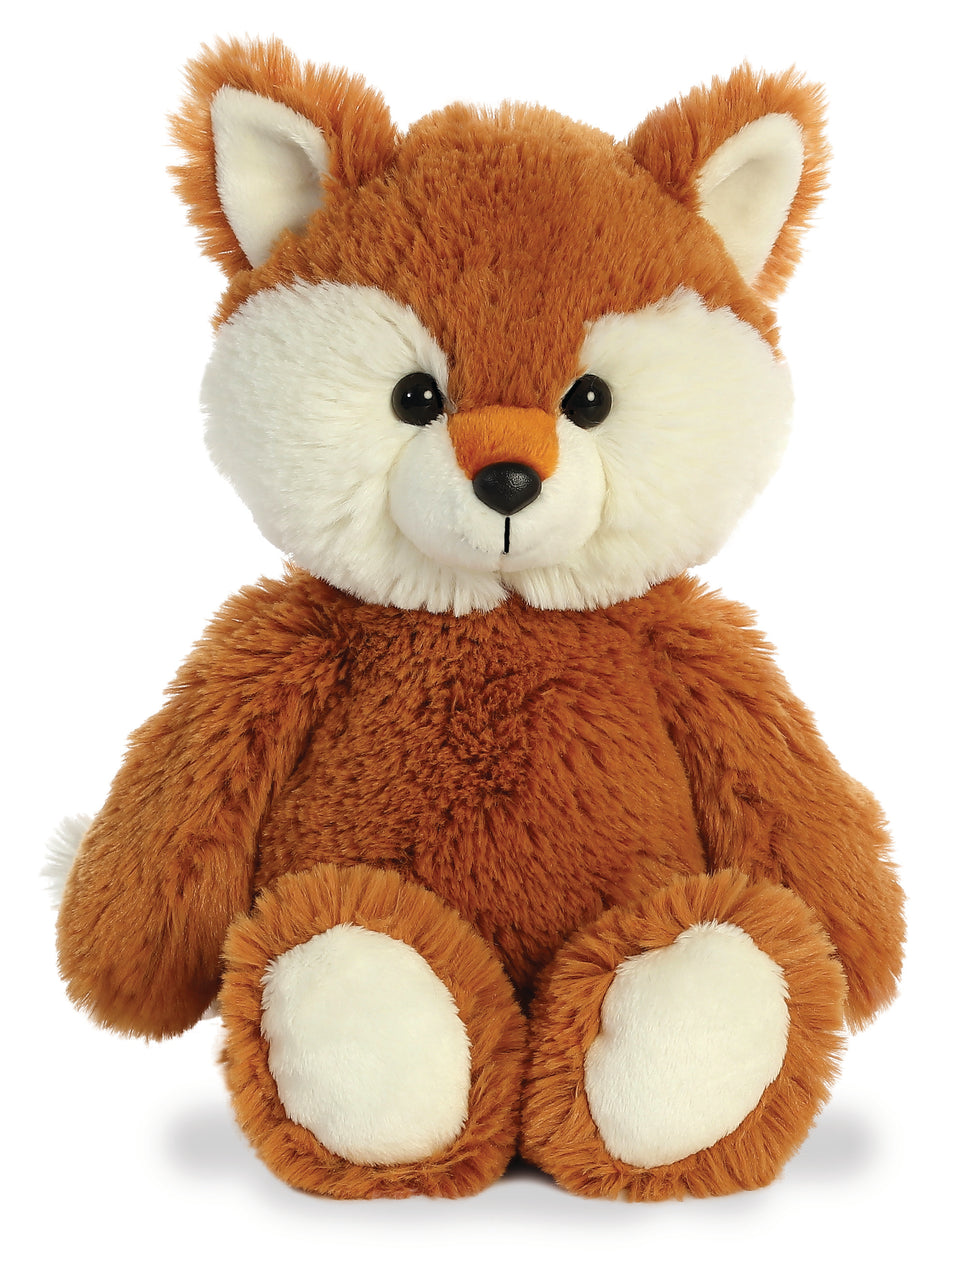 "AURORA CUDDLY FRIENDS PLUSH 12"" FOX 34215 CUDDLY QUALITY SOFT TOY TEDDY"